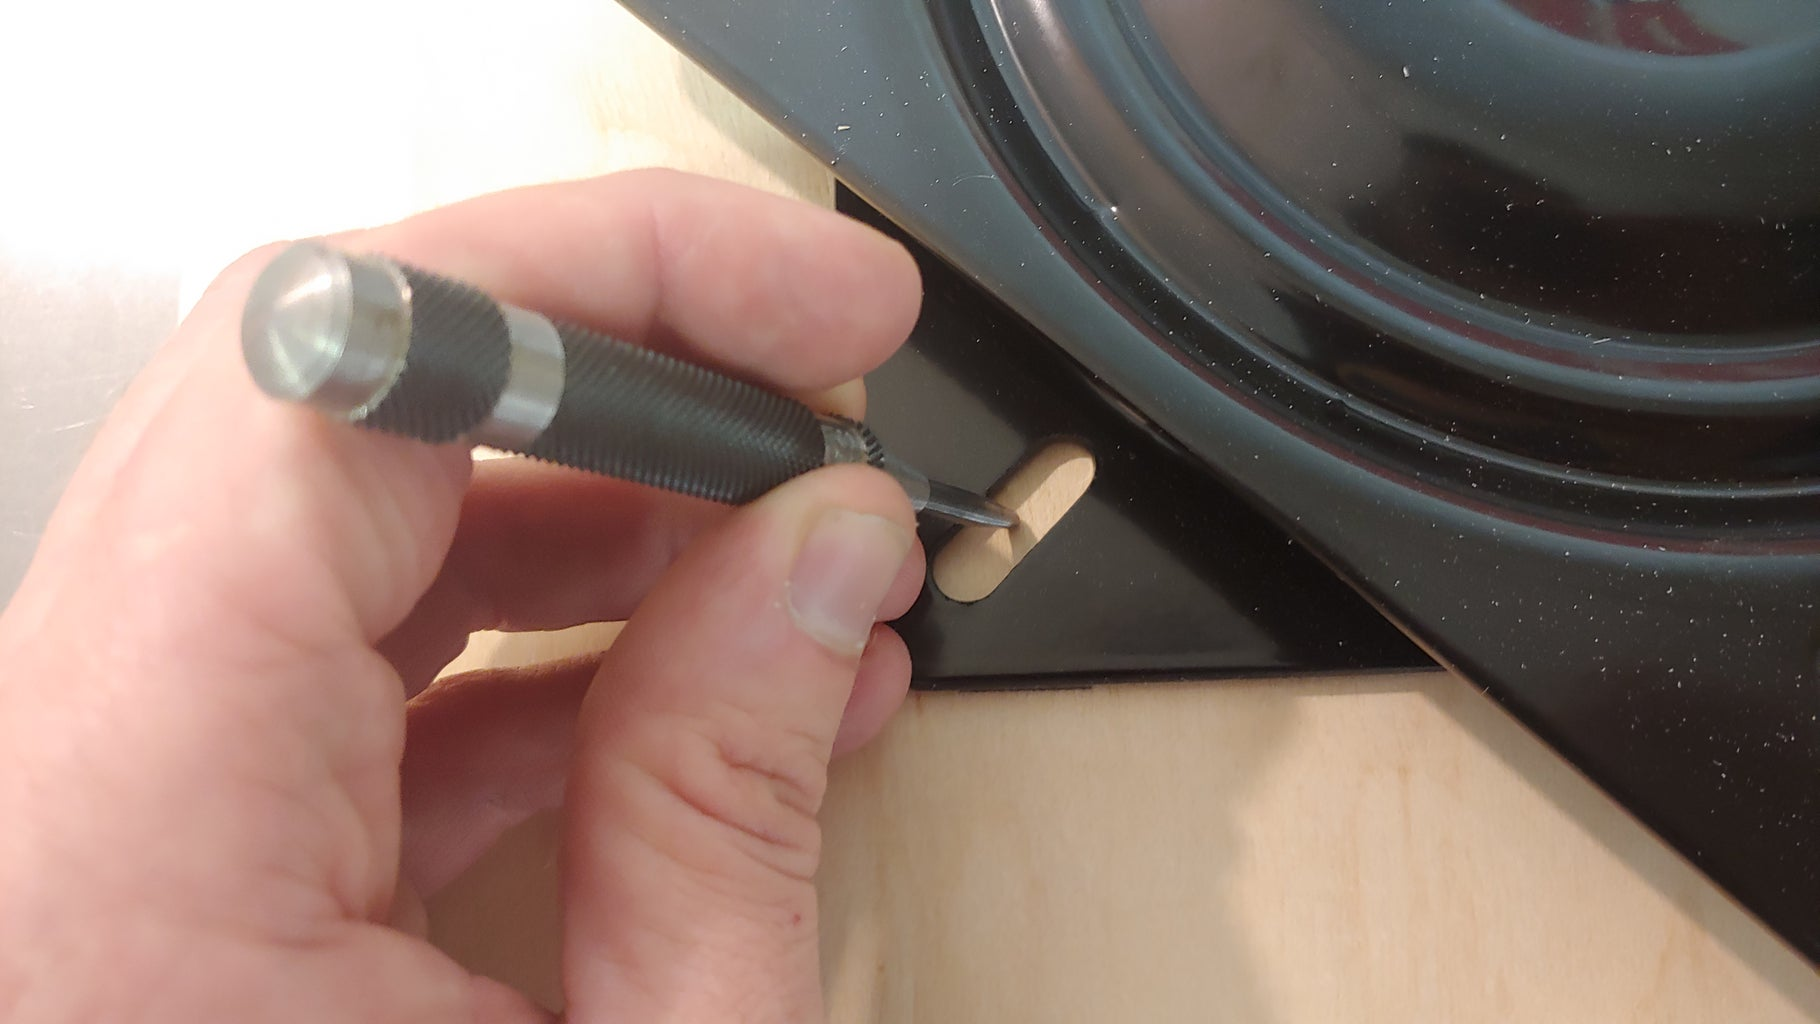 Step 2: Center and Mount the Swivel Base to the Bottom Piece